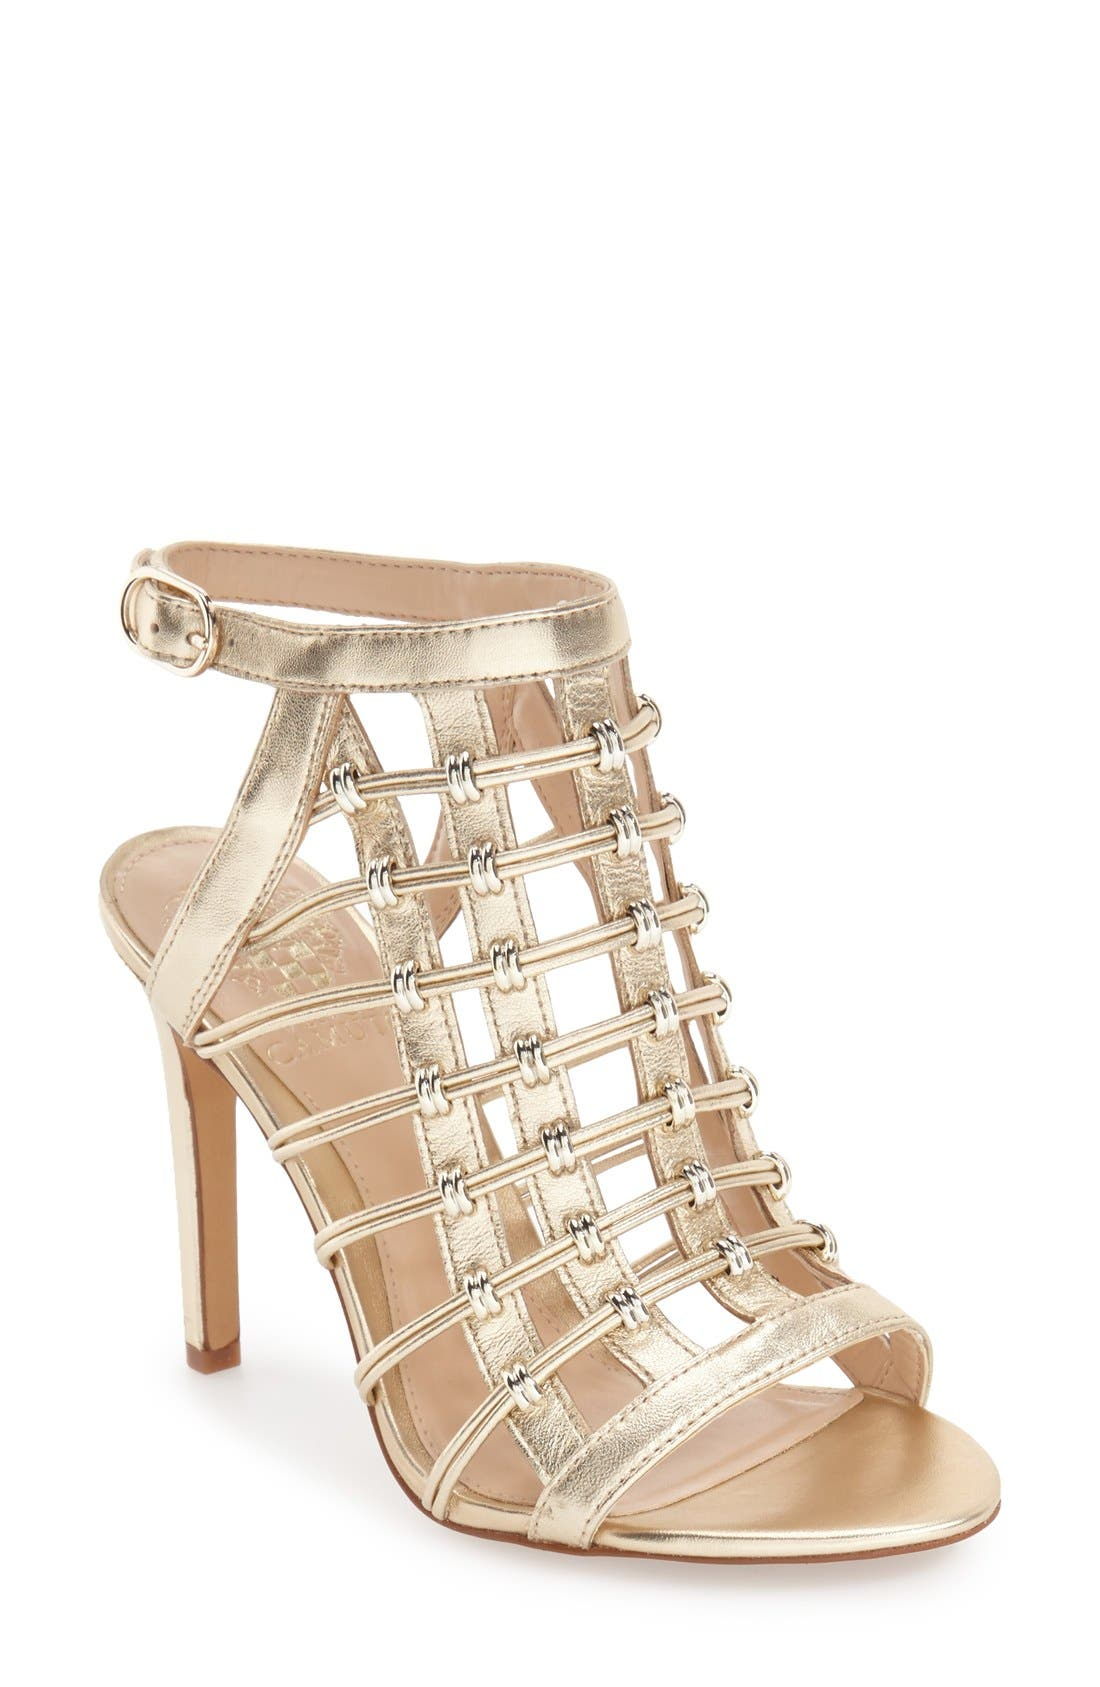 Alternate Image 1 Selected - Vince Camuto 'Kalare' Cage Sandal (Women)